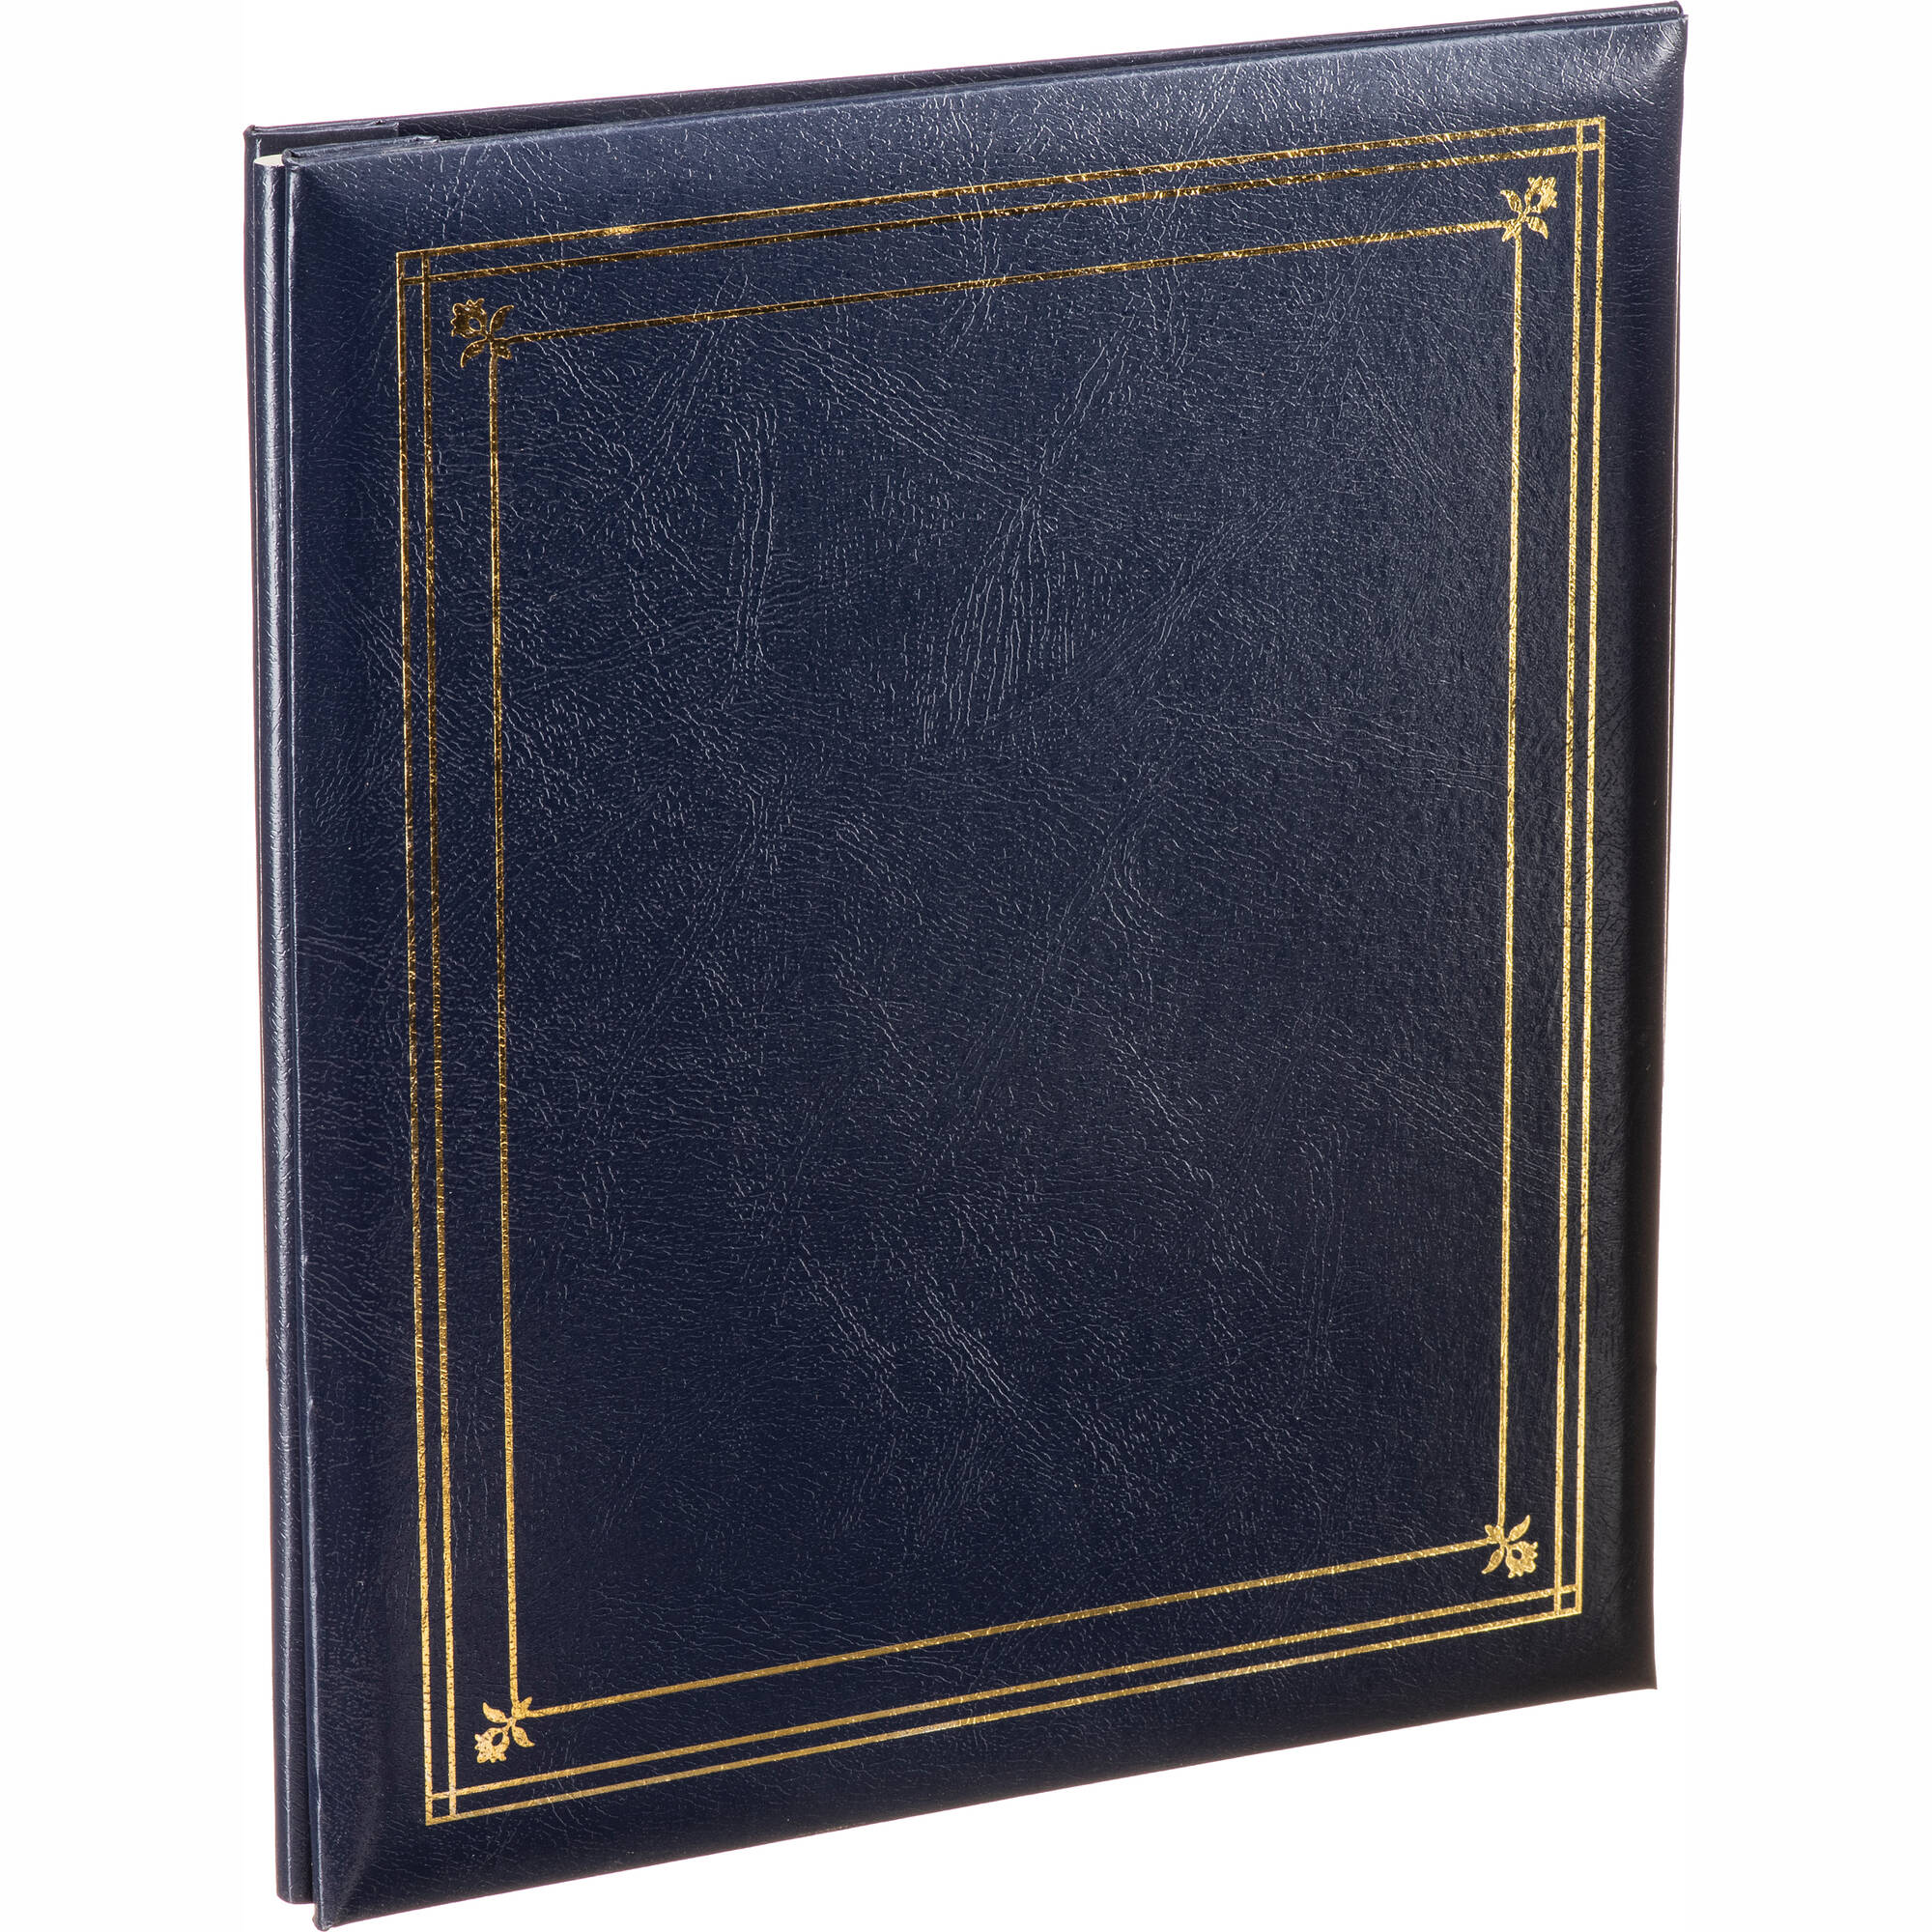 Pioneer Photo Albums Ps 5781 5x7 And 8x10 X Pando Pocket Album Navy Blue